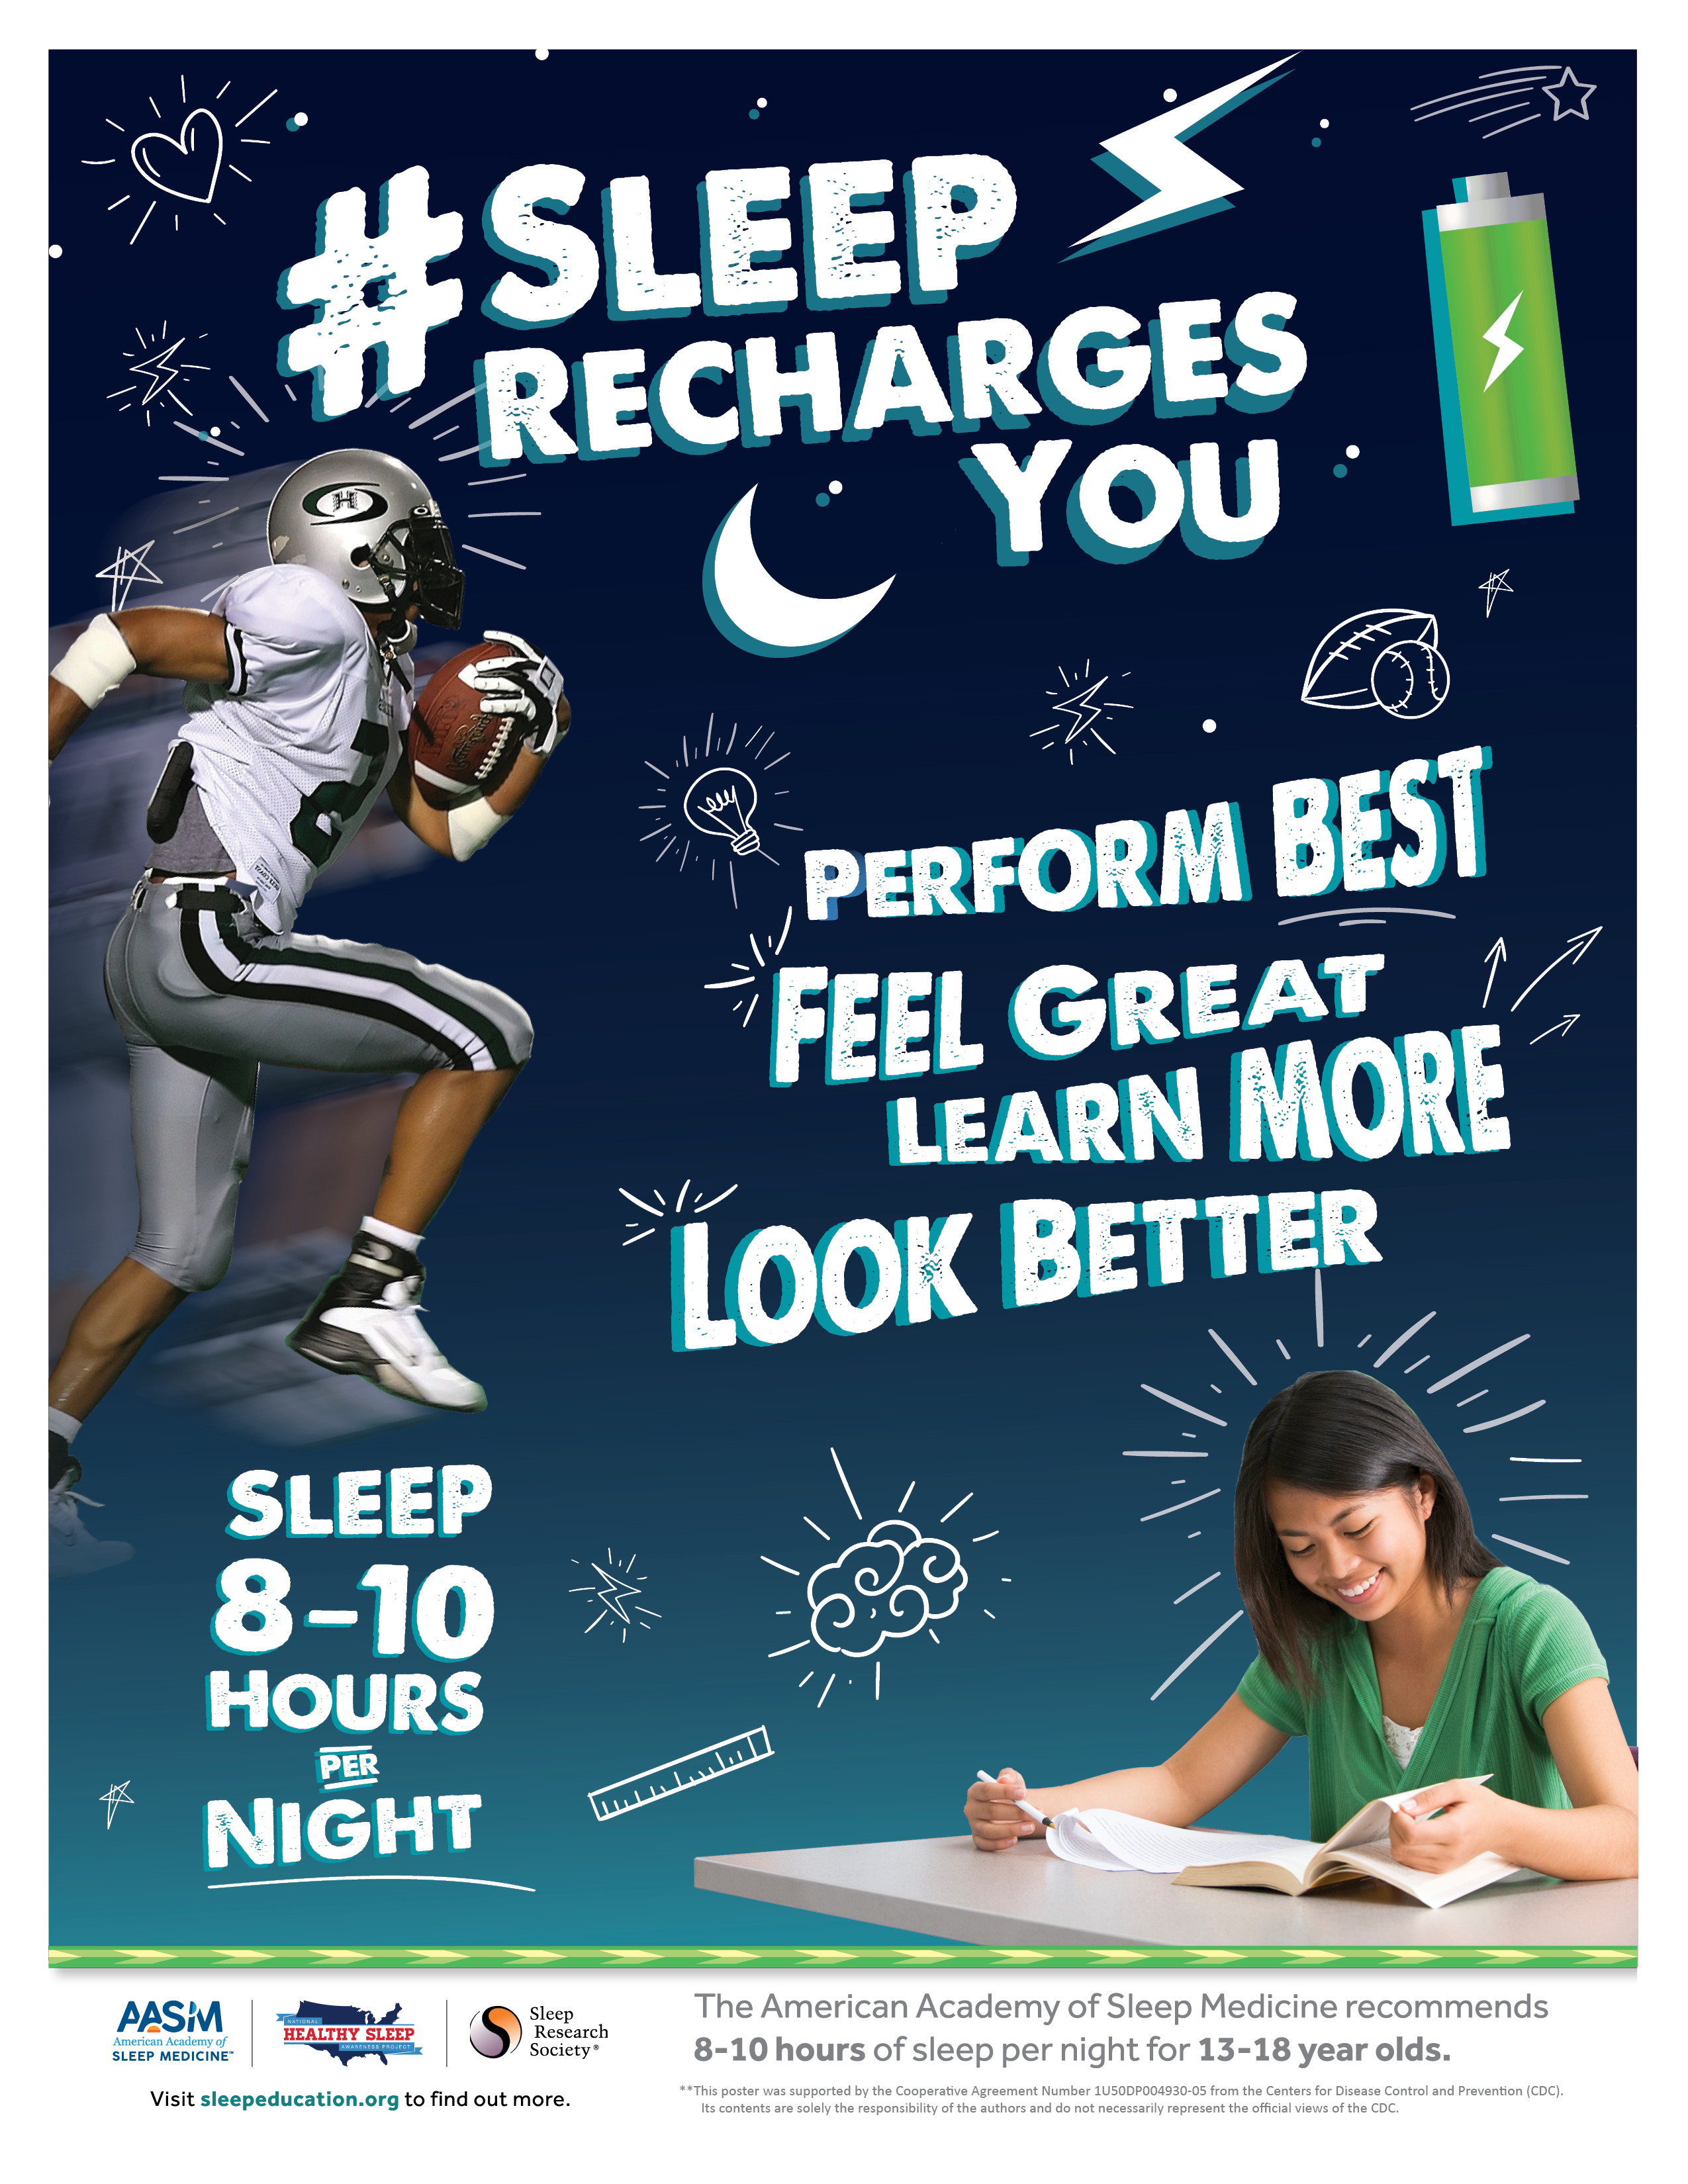 sleep-recharges-you-poster